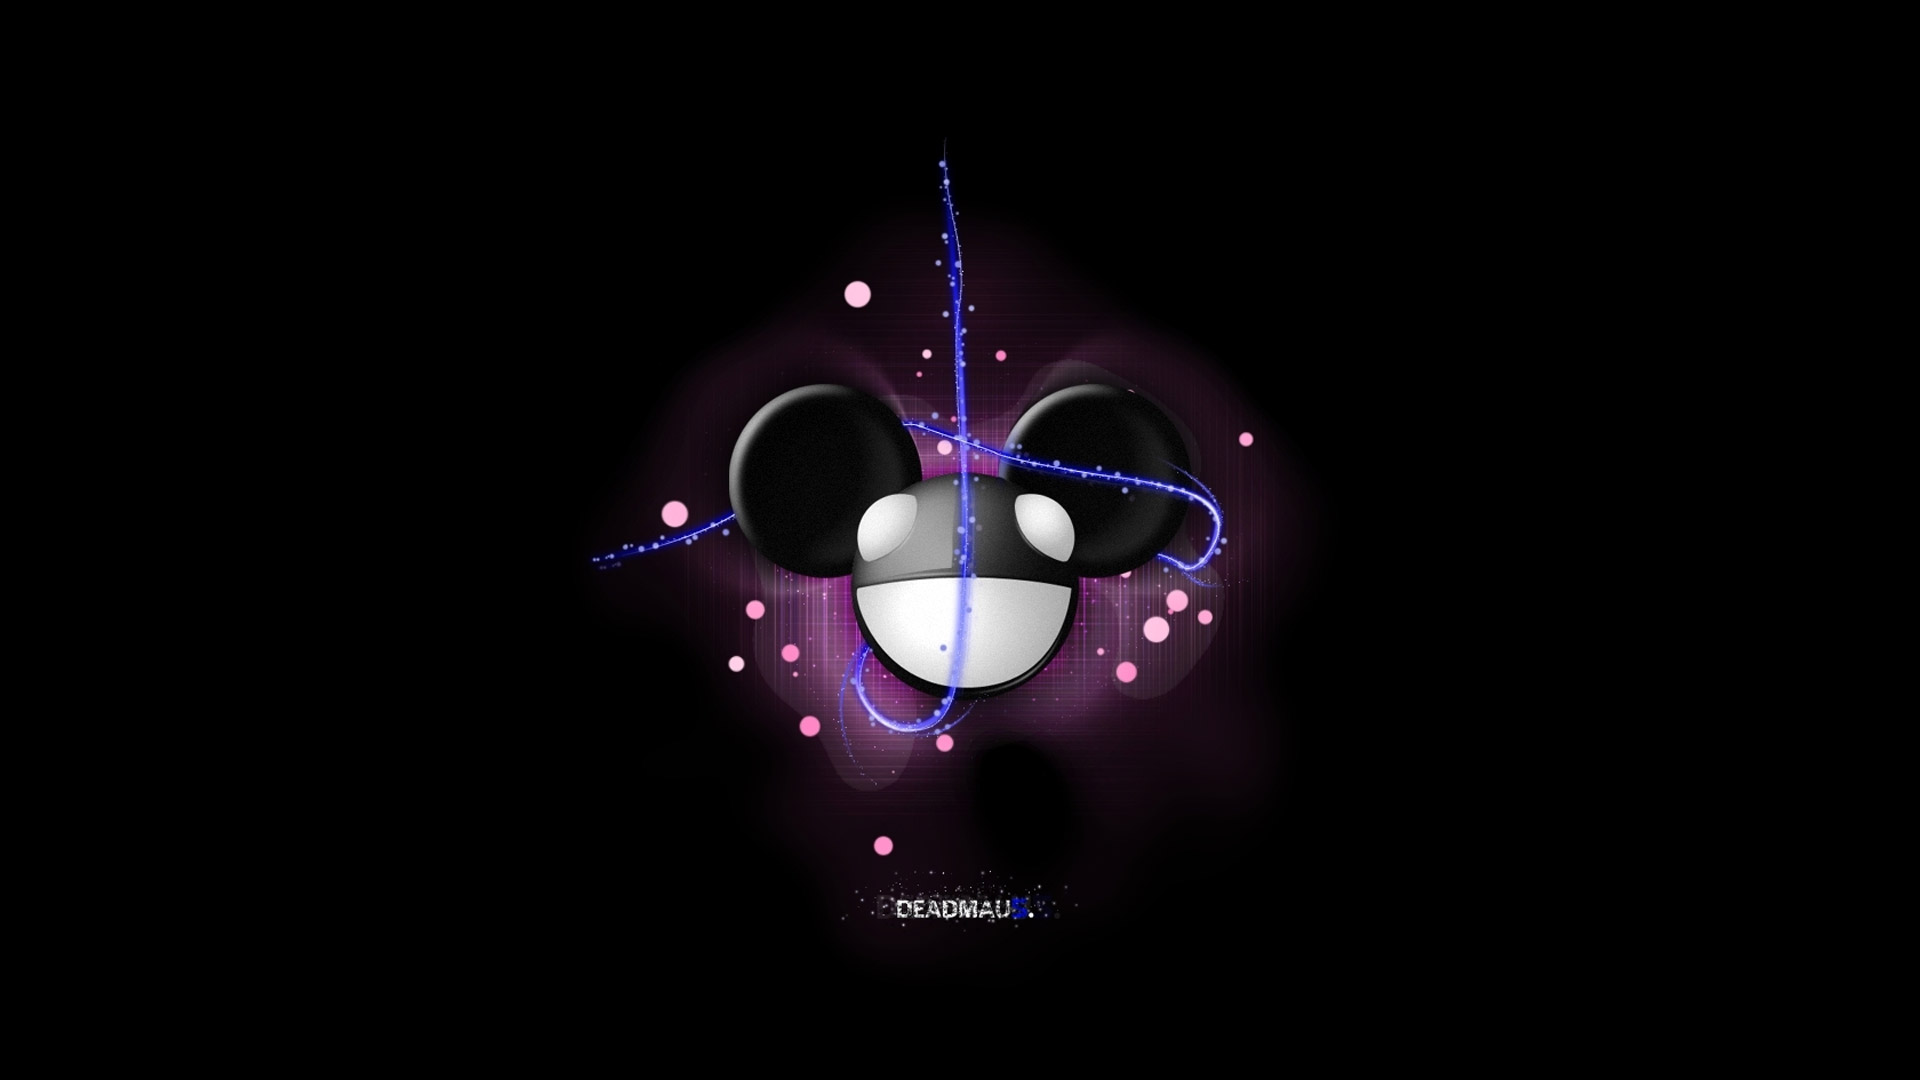 deadmau5 wallpaper 25347